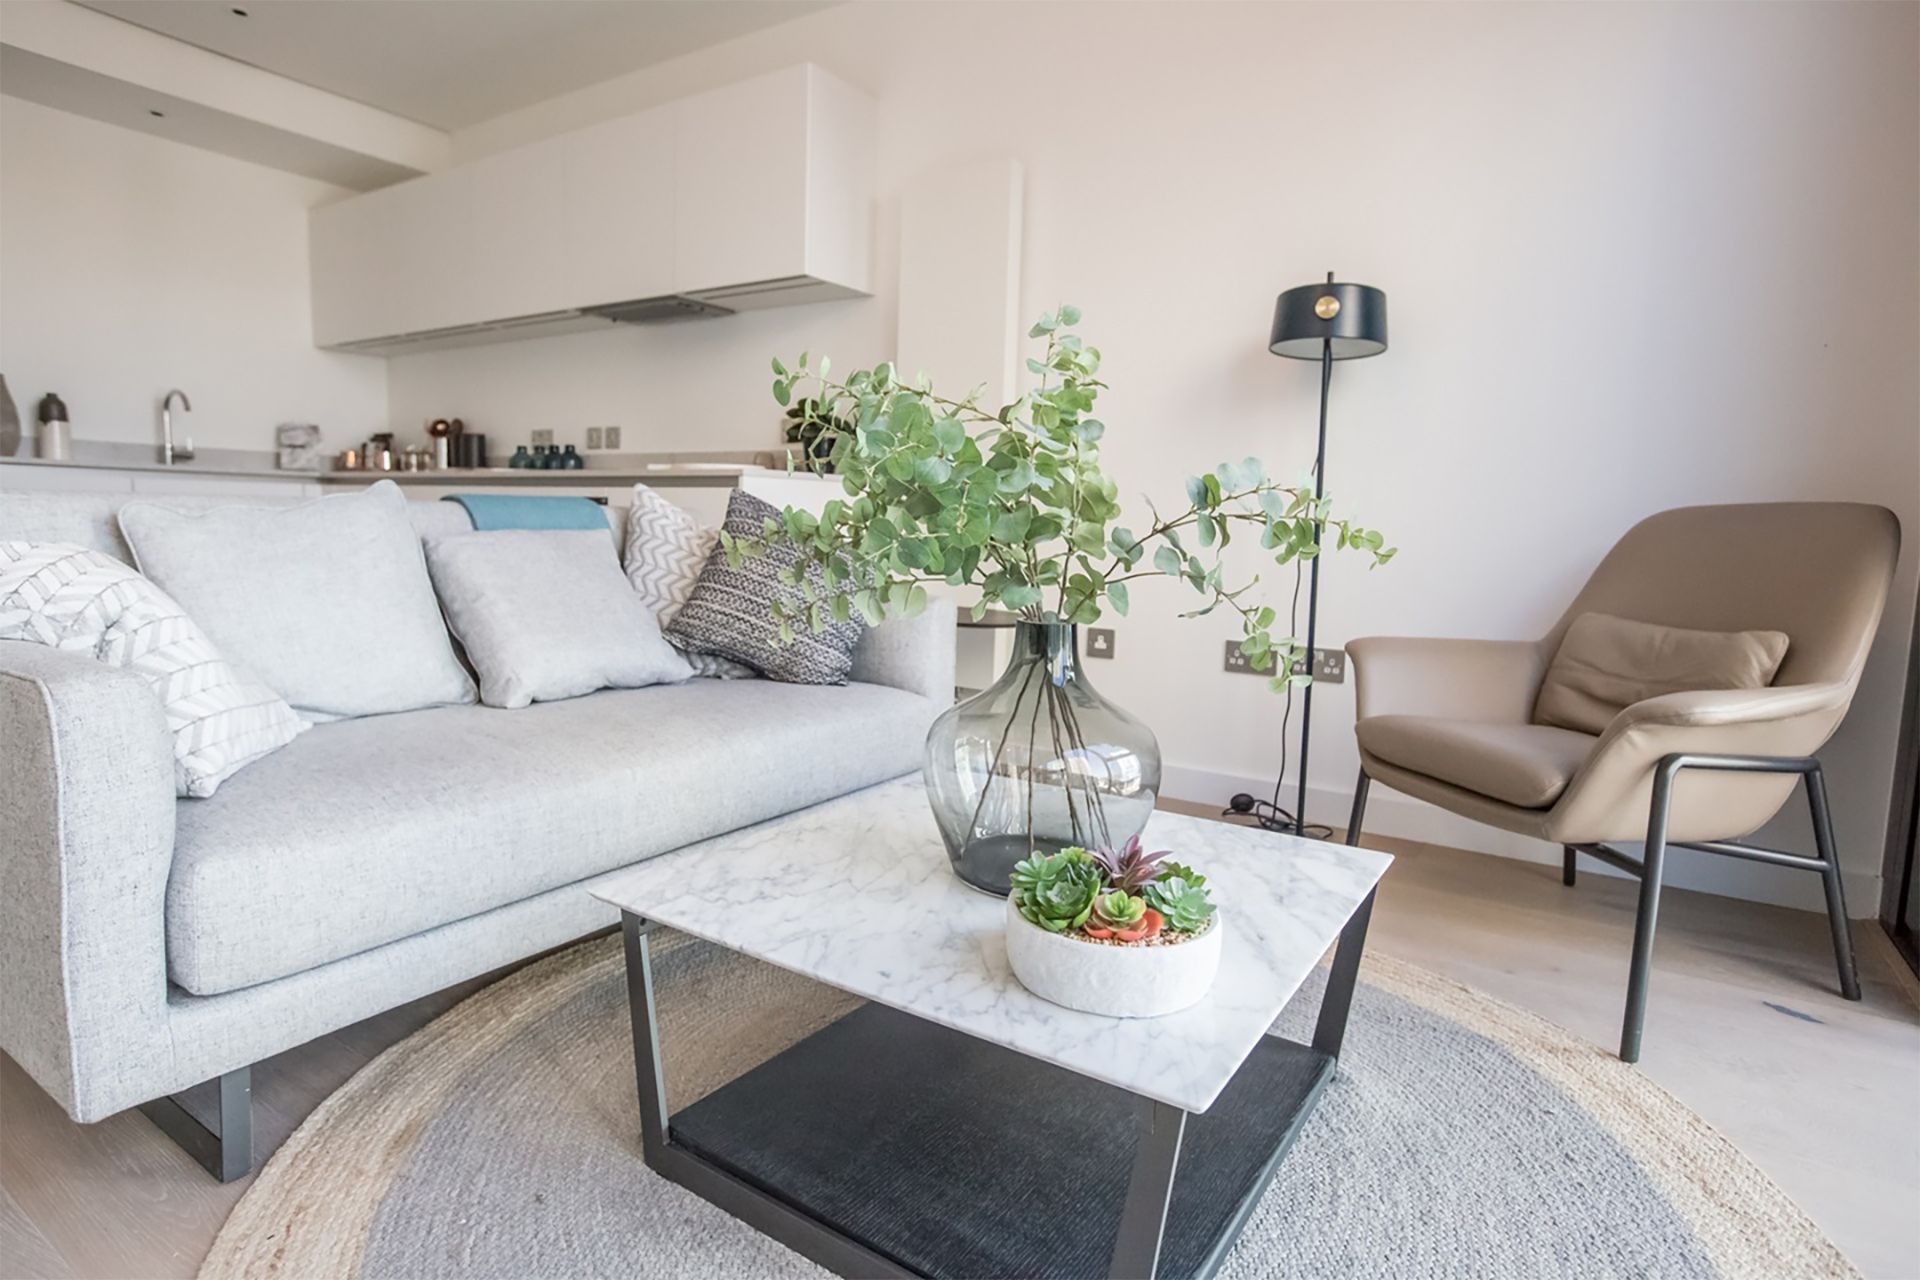 Studio apartment to rent in London HIL-HH-0102